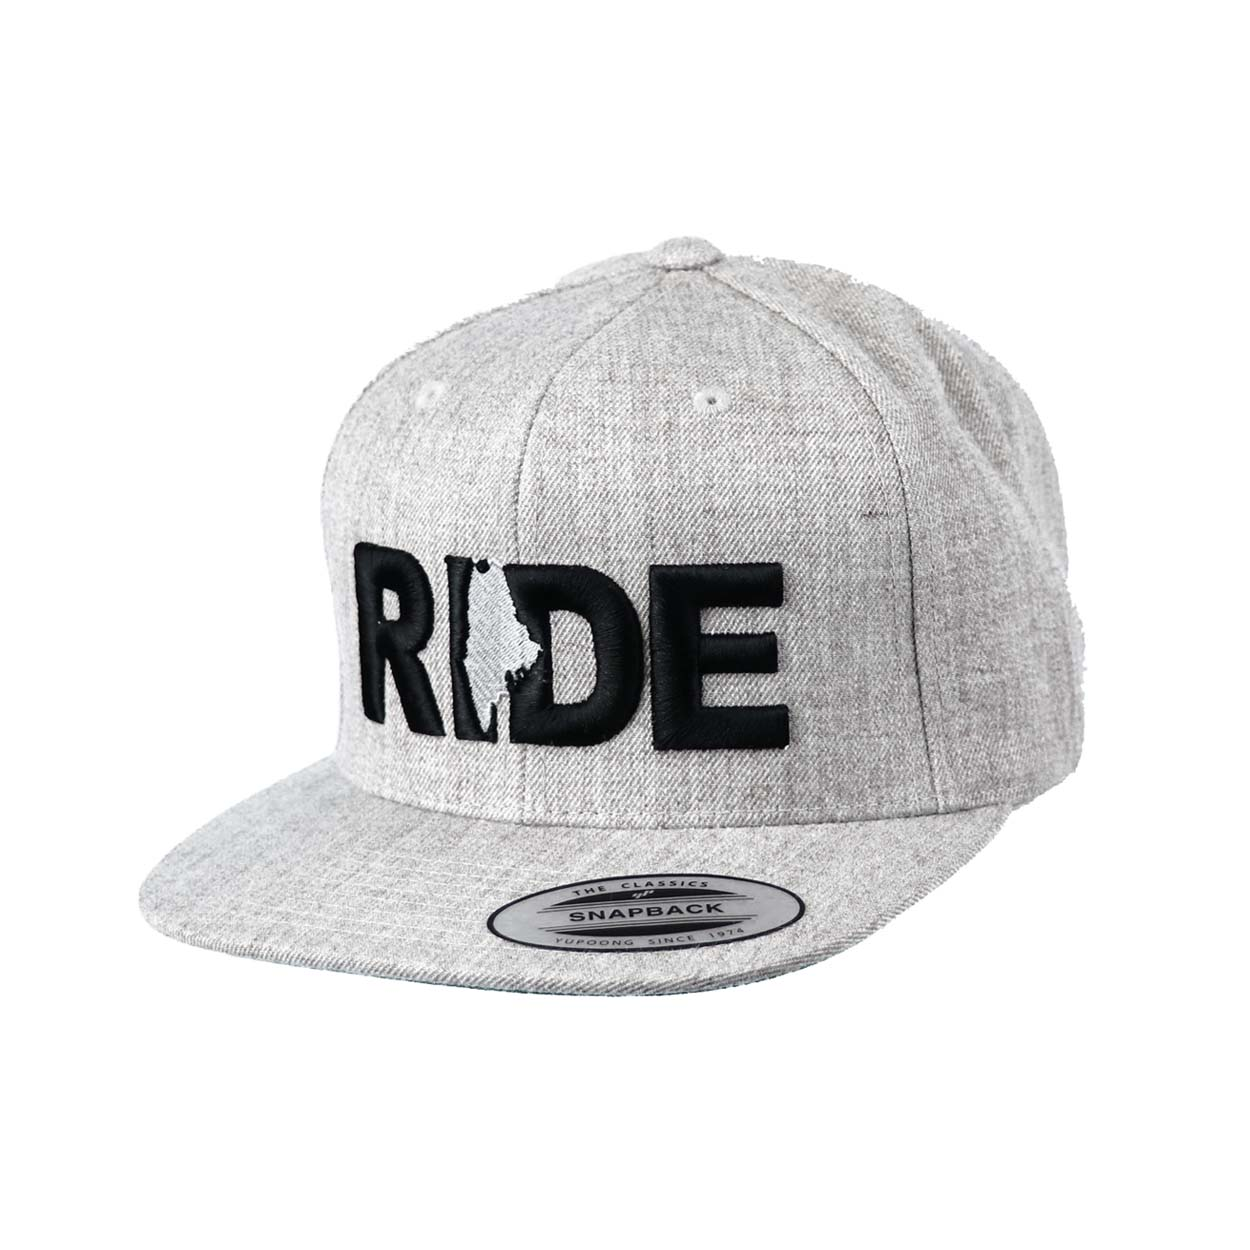 Ride Maine Classic Embroidered  Snapback Flat Brim Hat Gray/Black